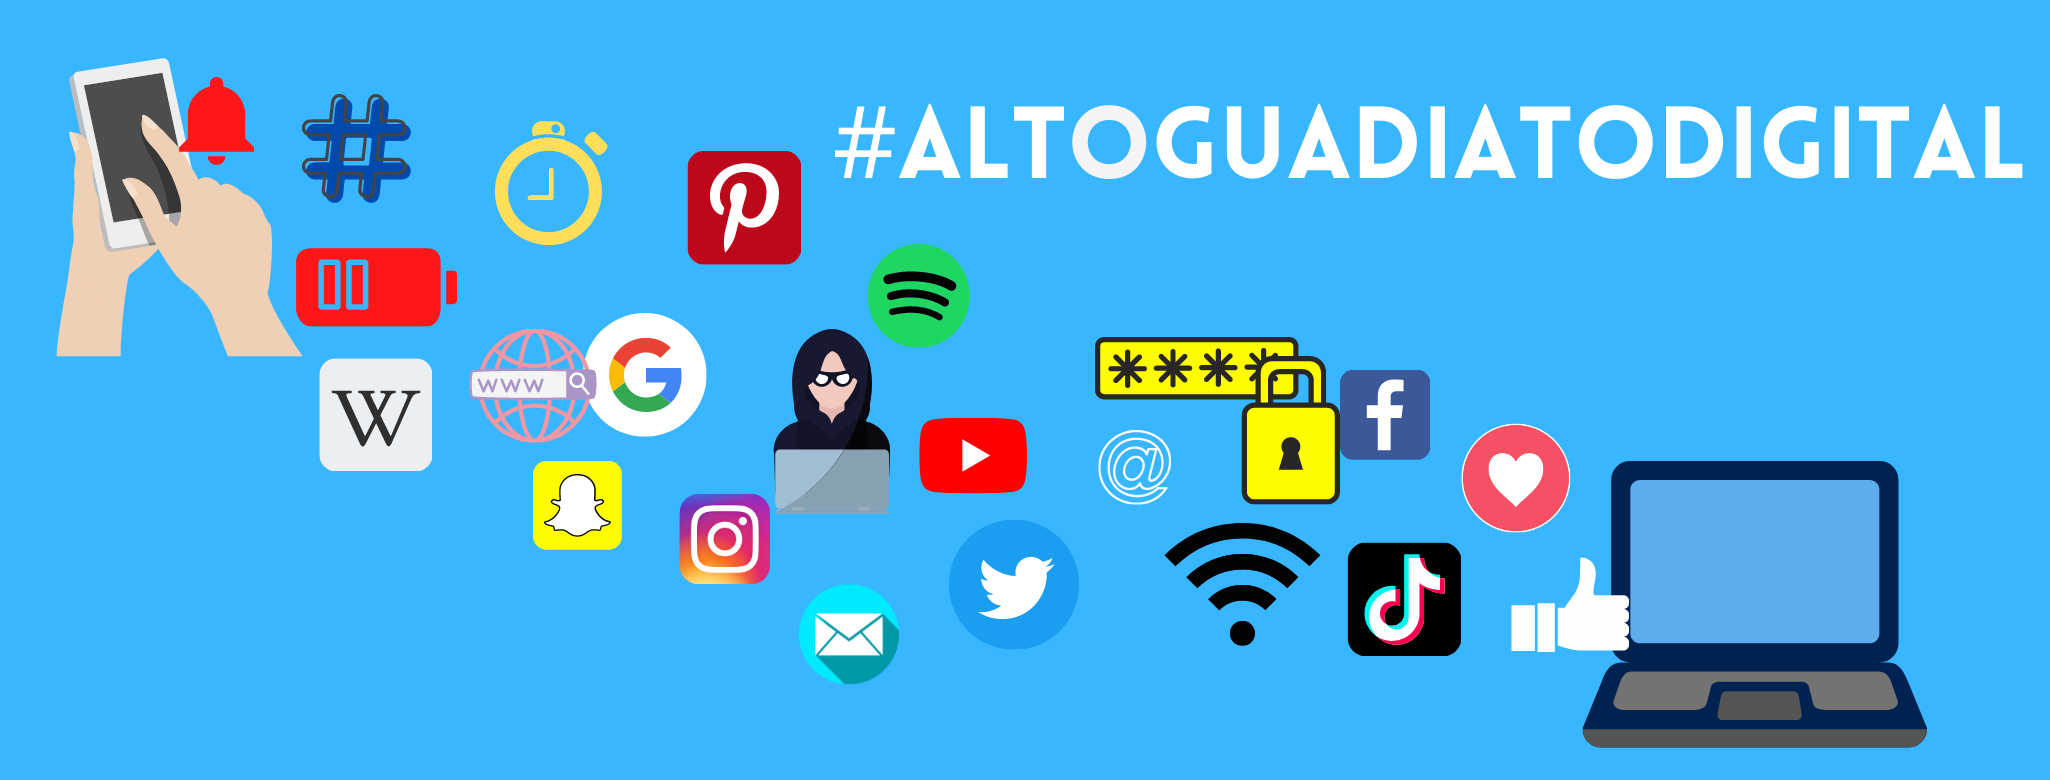 #AltoGuadiatoDigital